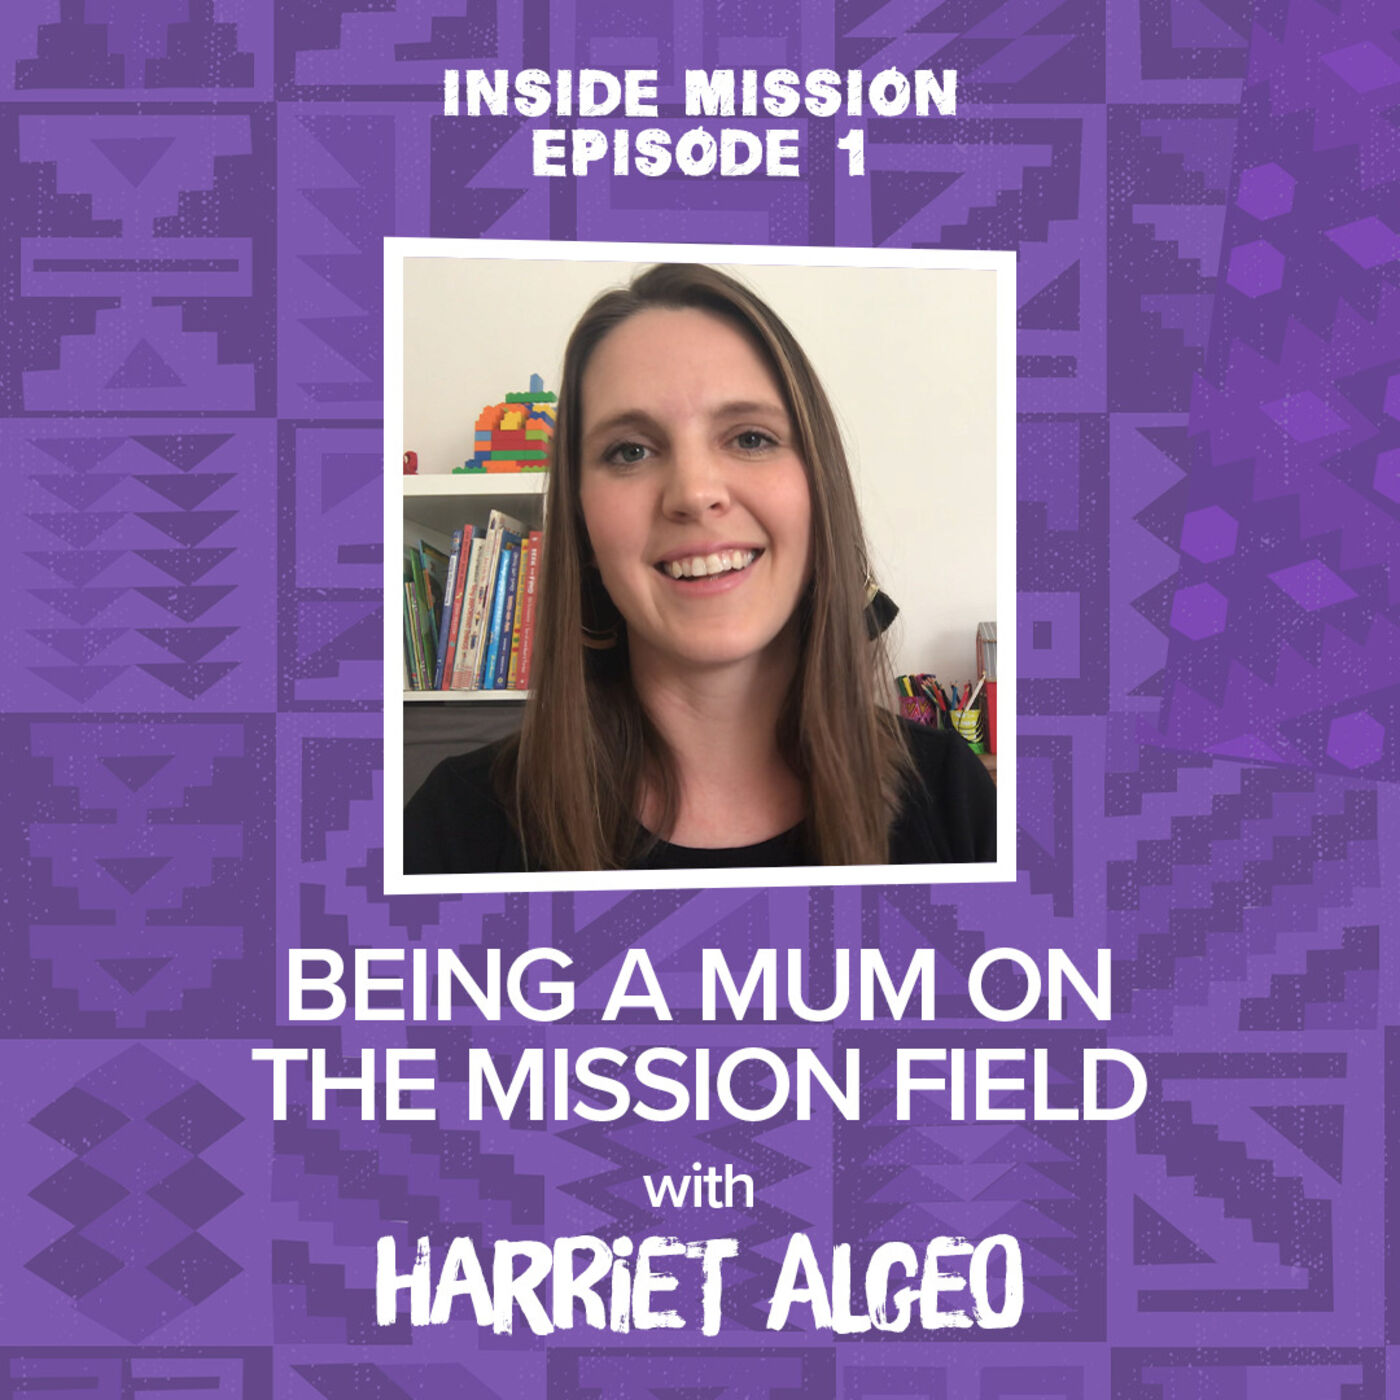 Being a mum on the mission field: a conversation with Harriet Algeo